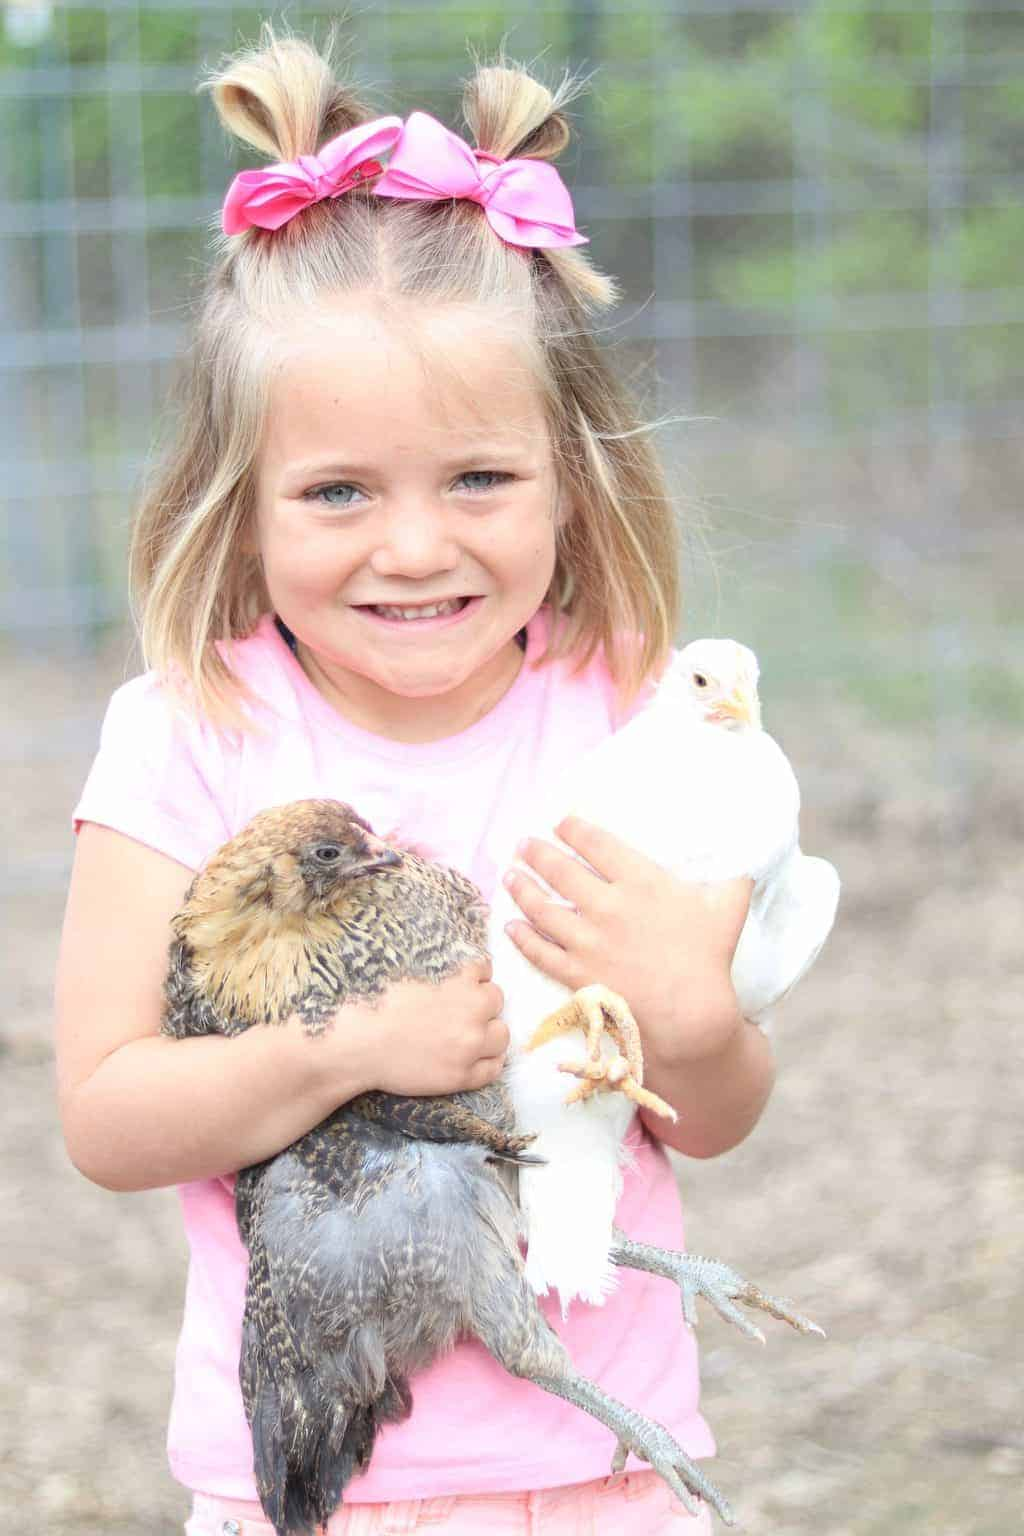 A little girl holding chickens outside.